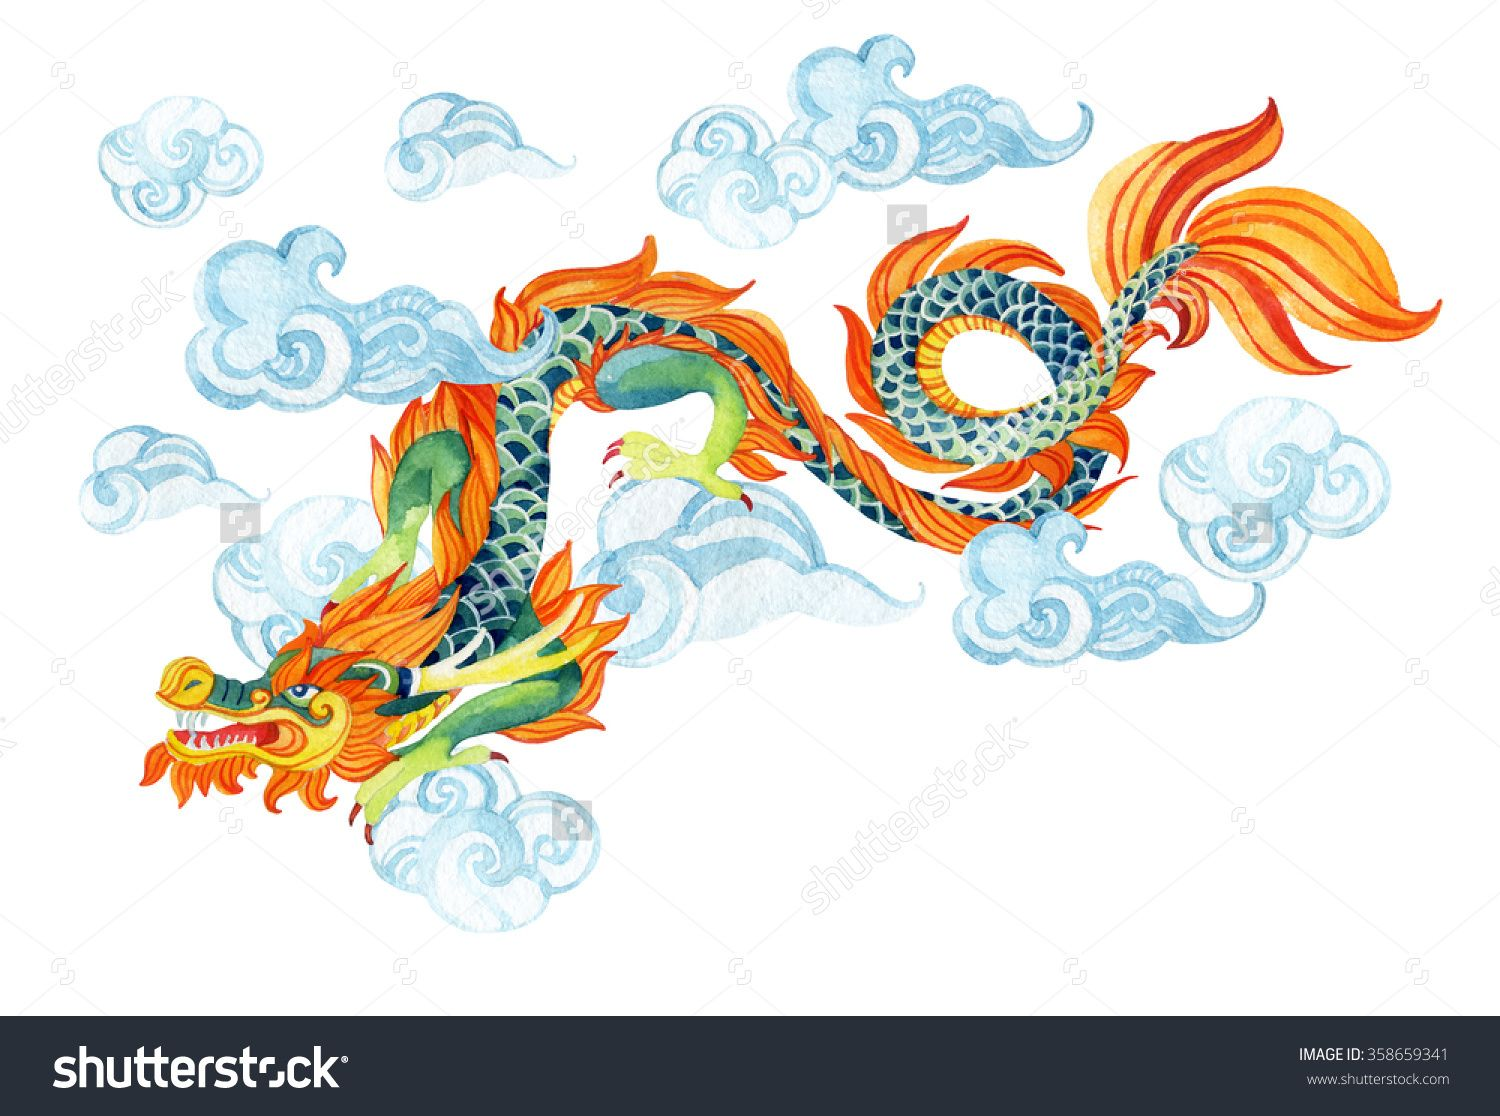 Stock photo chinese dragon traditional symbol of dragon watercolor traditional symbol of dragon watercolor hand painted illustration buy this stock illustration on shutterstock find other images biocorpaavc